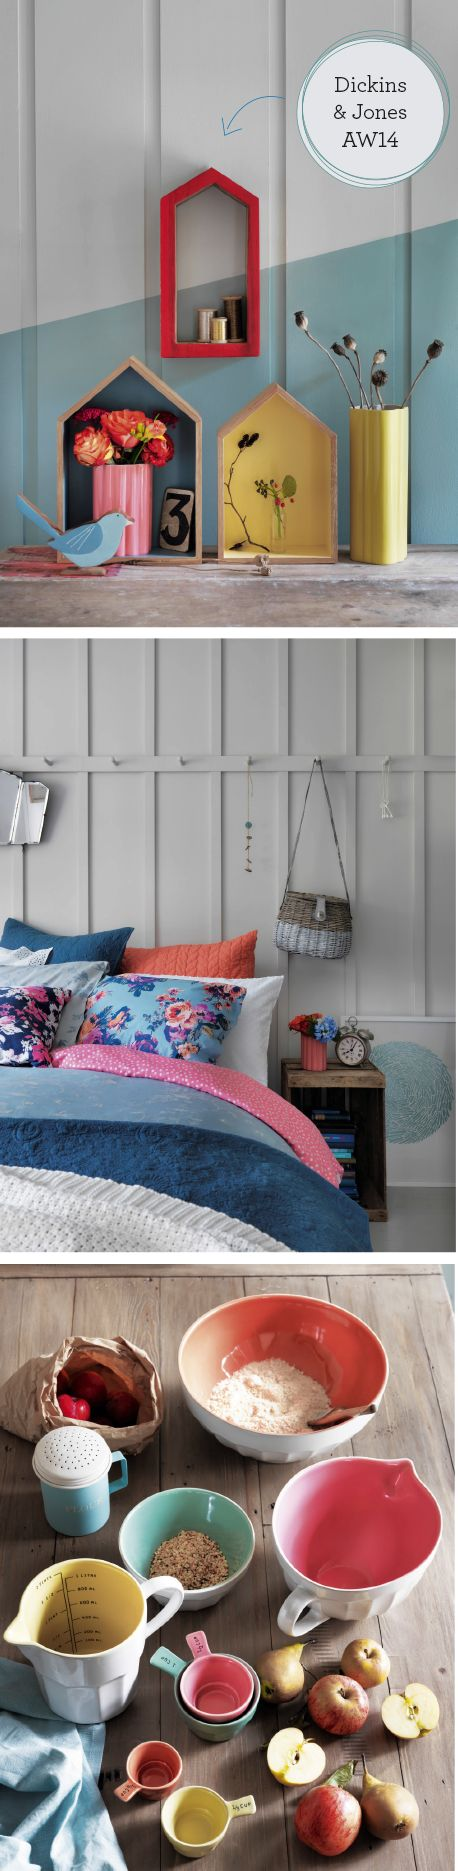 Dickins and Jones, House of Fraser, Homeware, Home Shopping Spy, Ideal Home, AW14, Autumn Winter trends